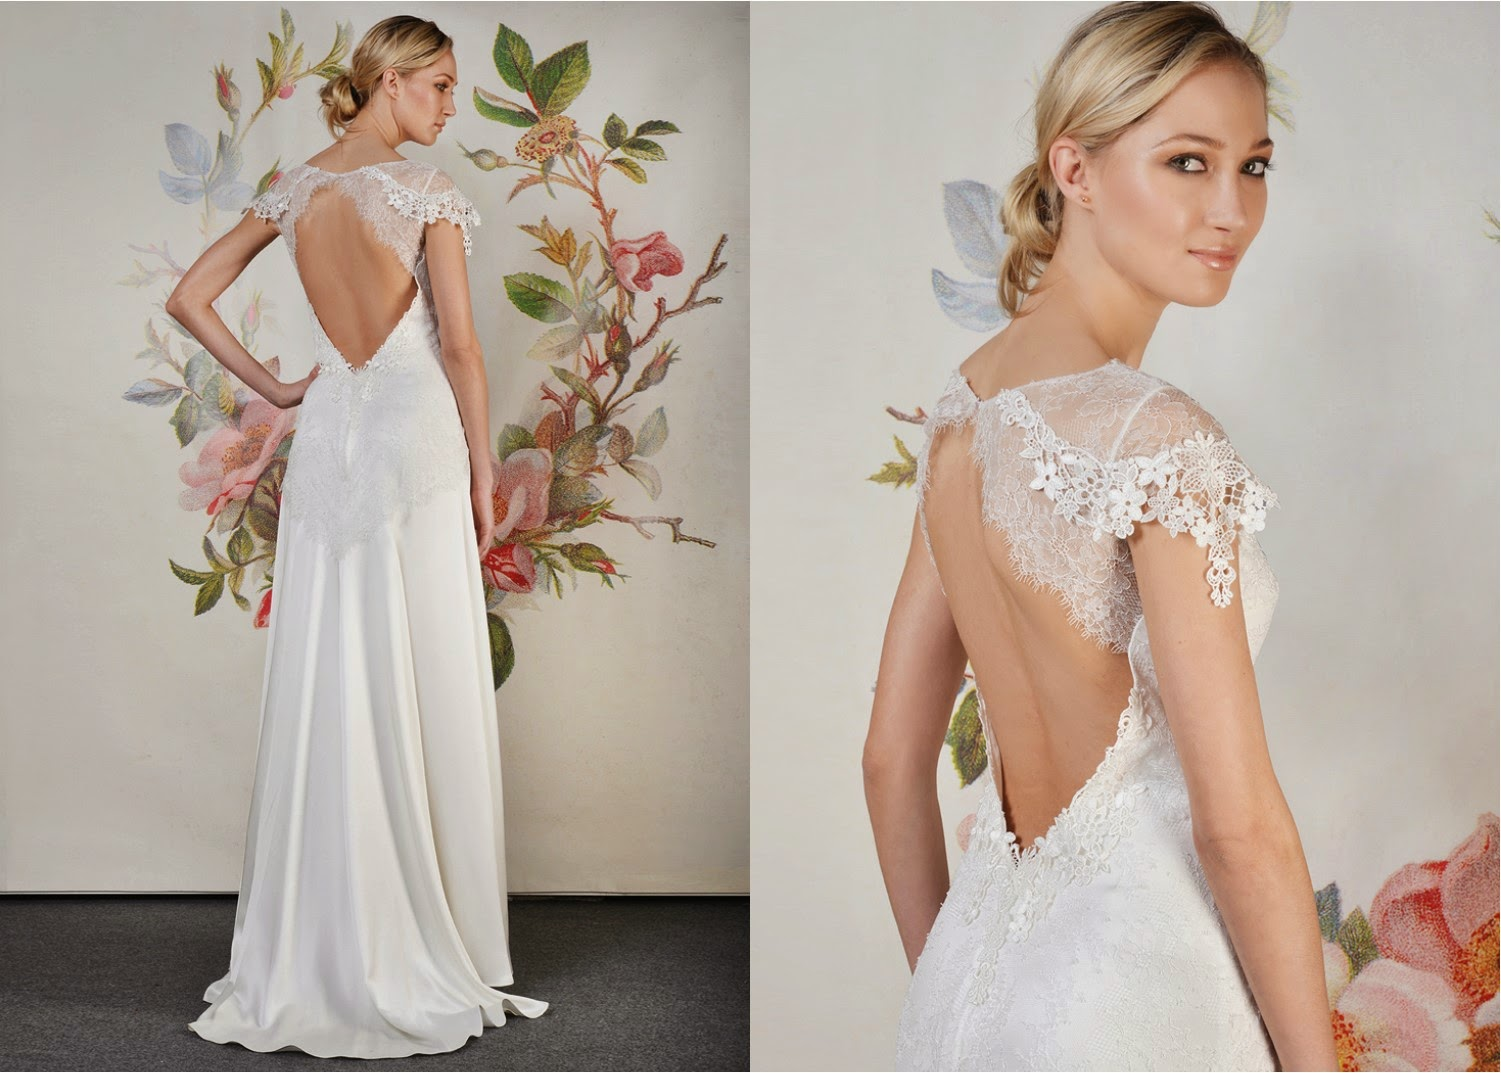 Wedding Gowns with Fabulous Backs! | StarDust Celebrations